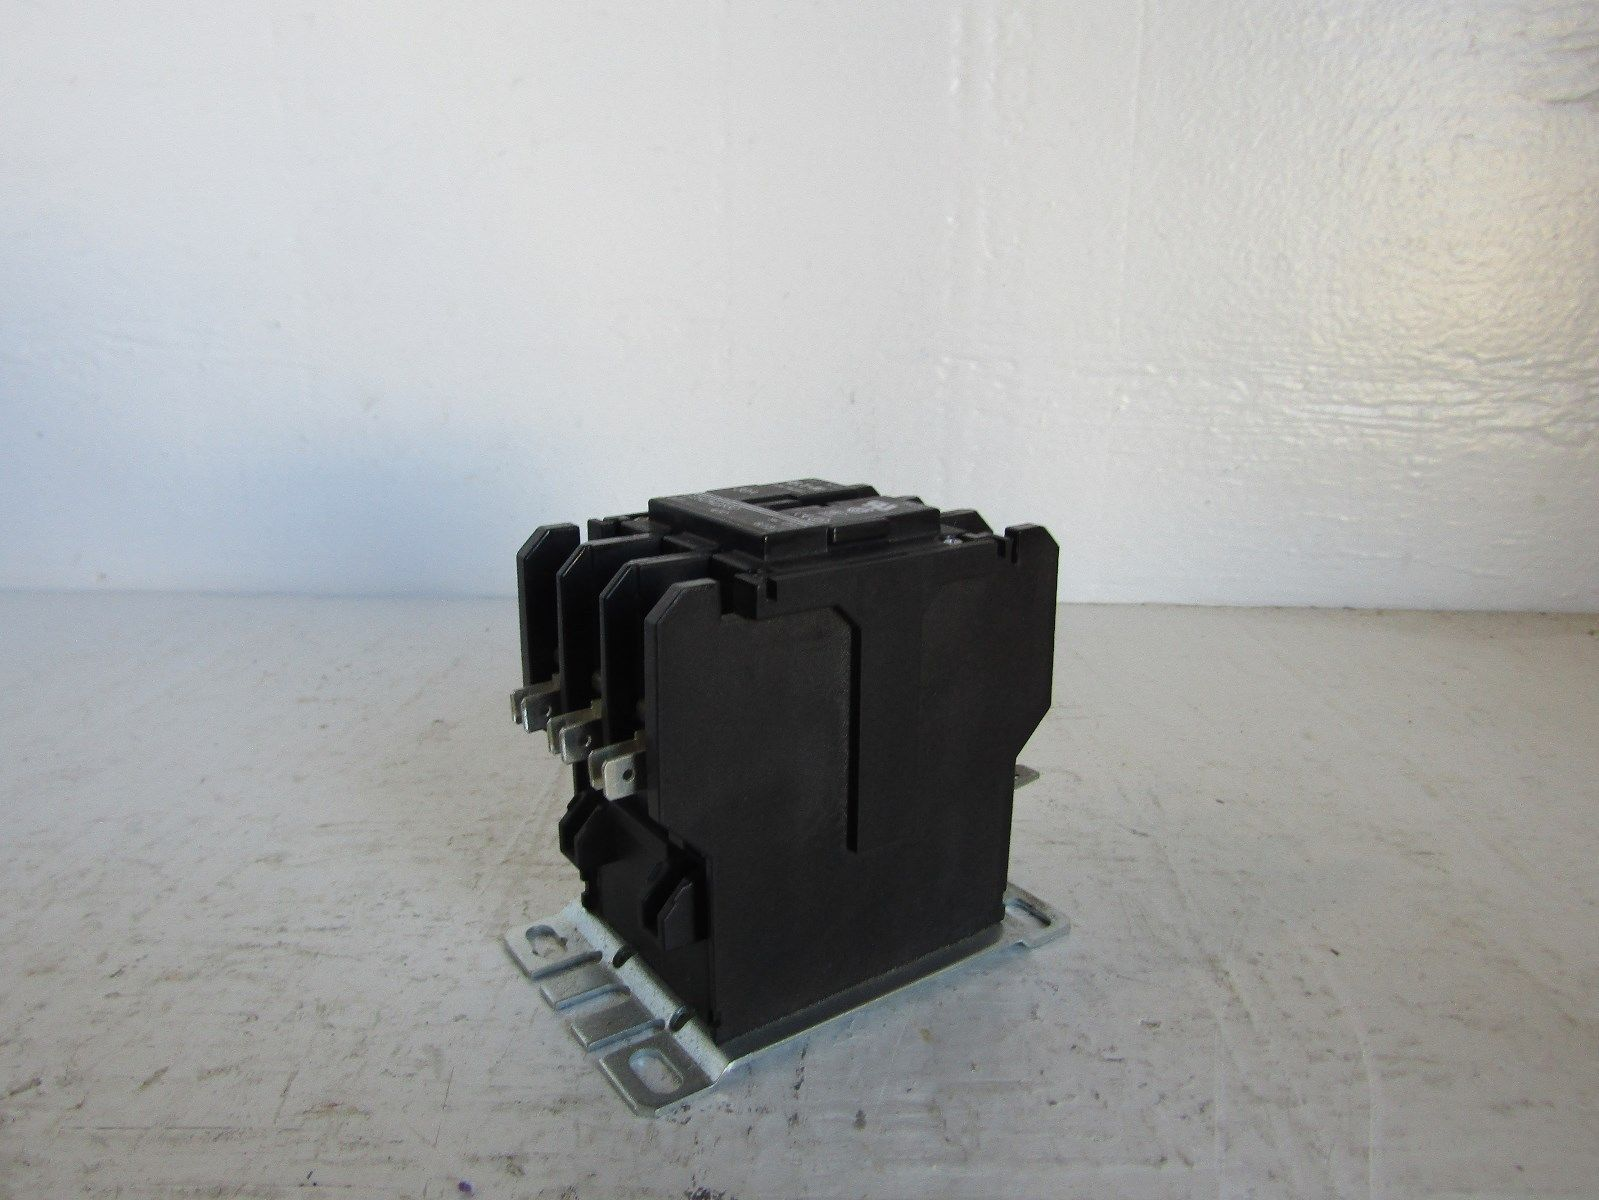 CUTLER HAMMER C25DND330 30 AMP 3 POLE CONTACTOR 120 VOLT COIL 331989252131 2?fit\=1000%2C750\&ssl\=1 c25dnd330 wiring diagram 3 phase contactor wiring diagram start Eaton C25dnf340 Contactor at eliteediting.co